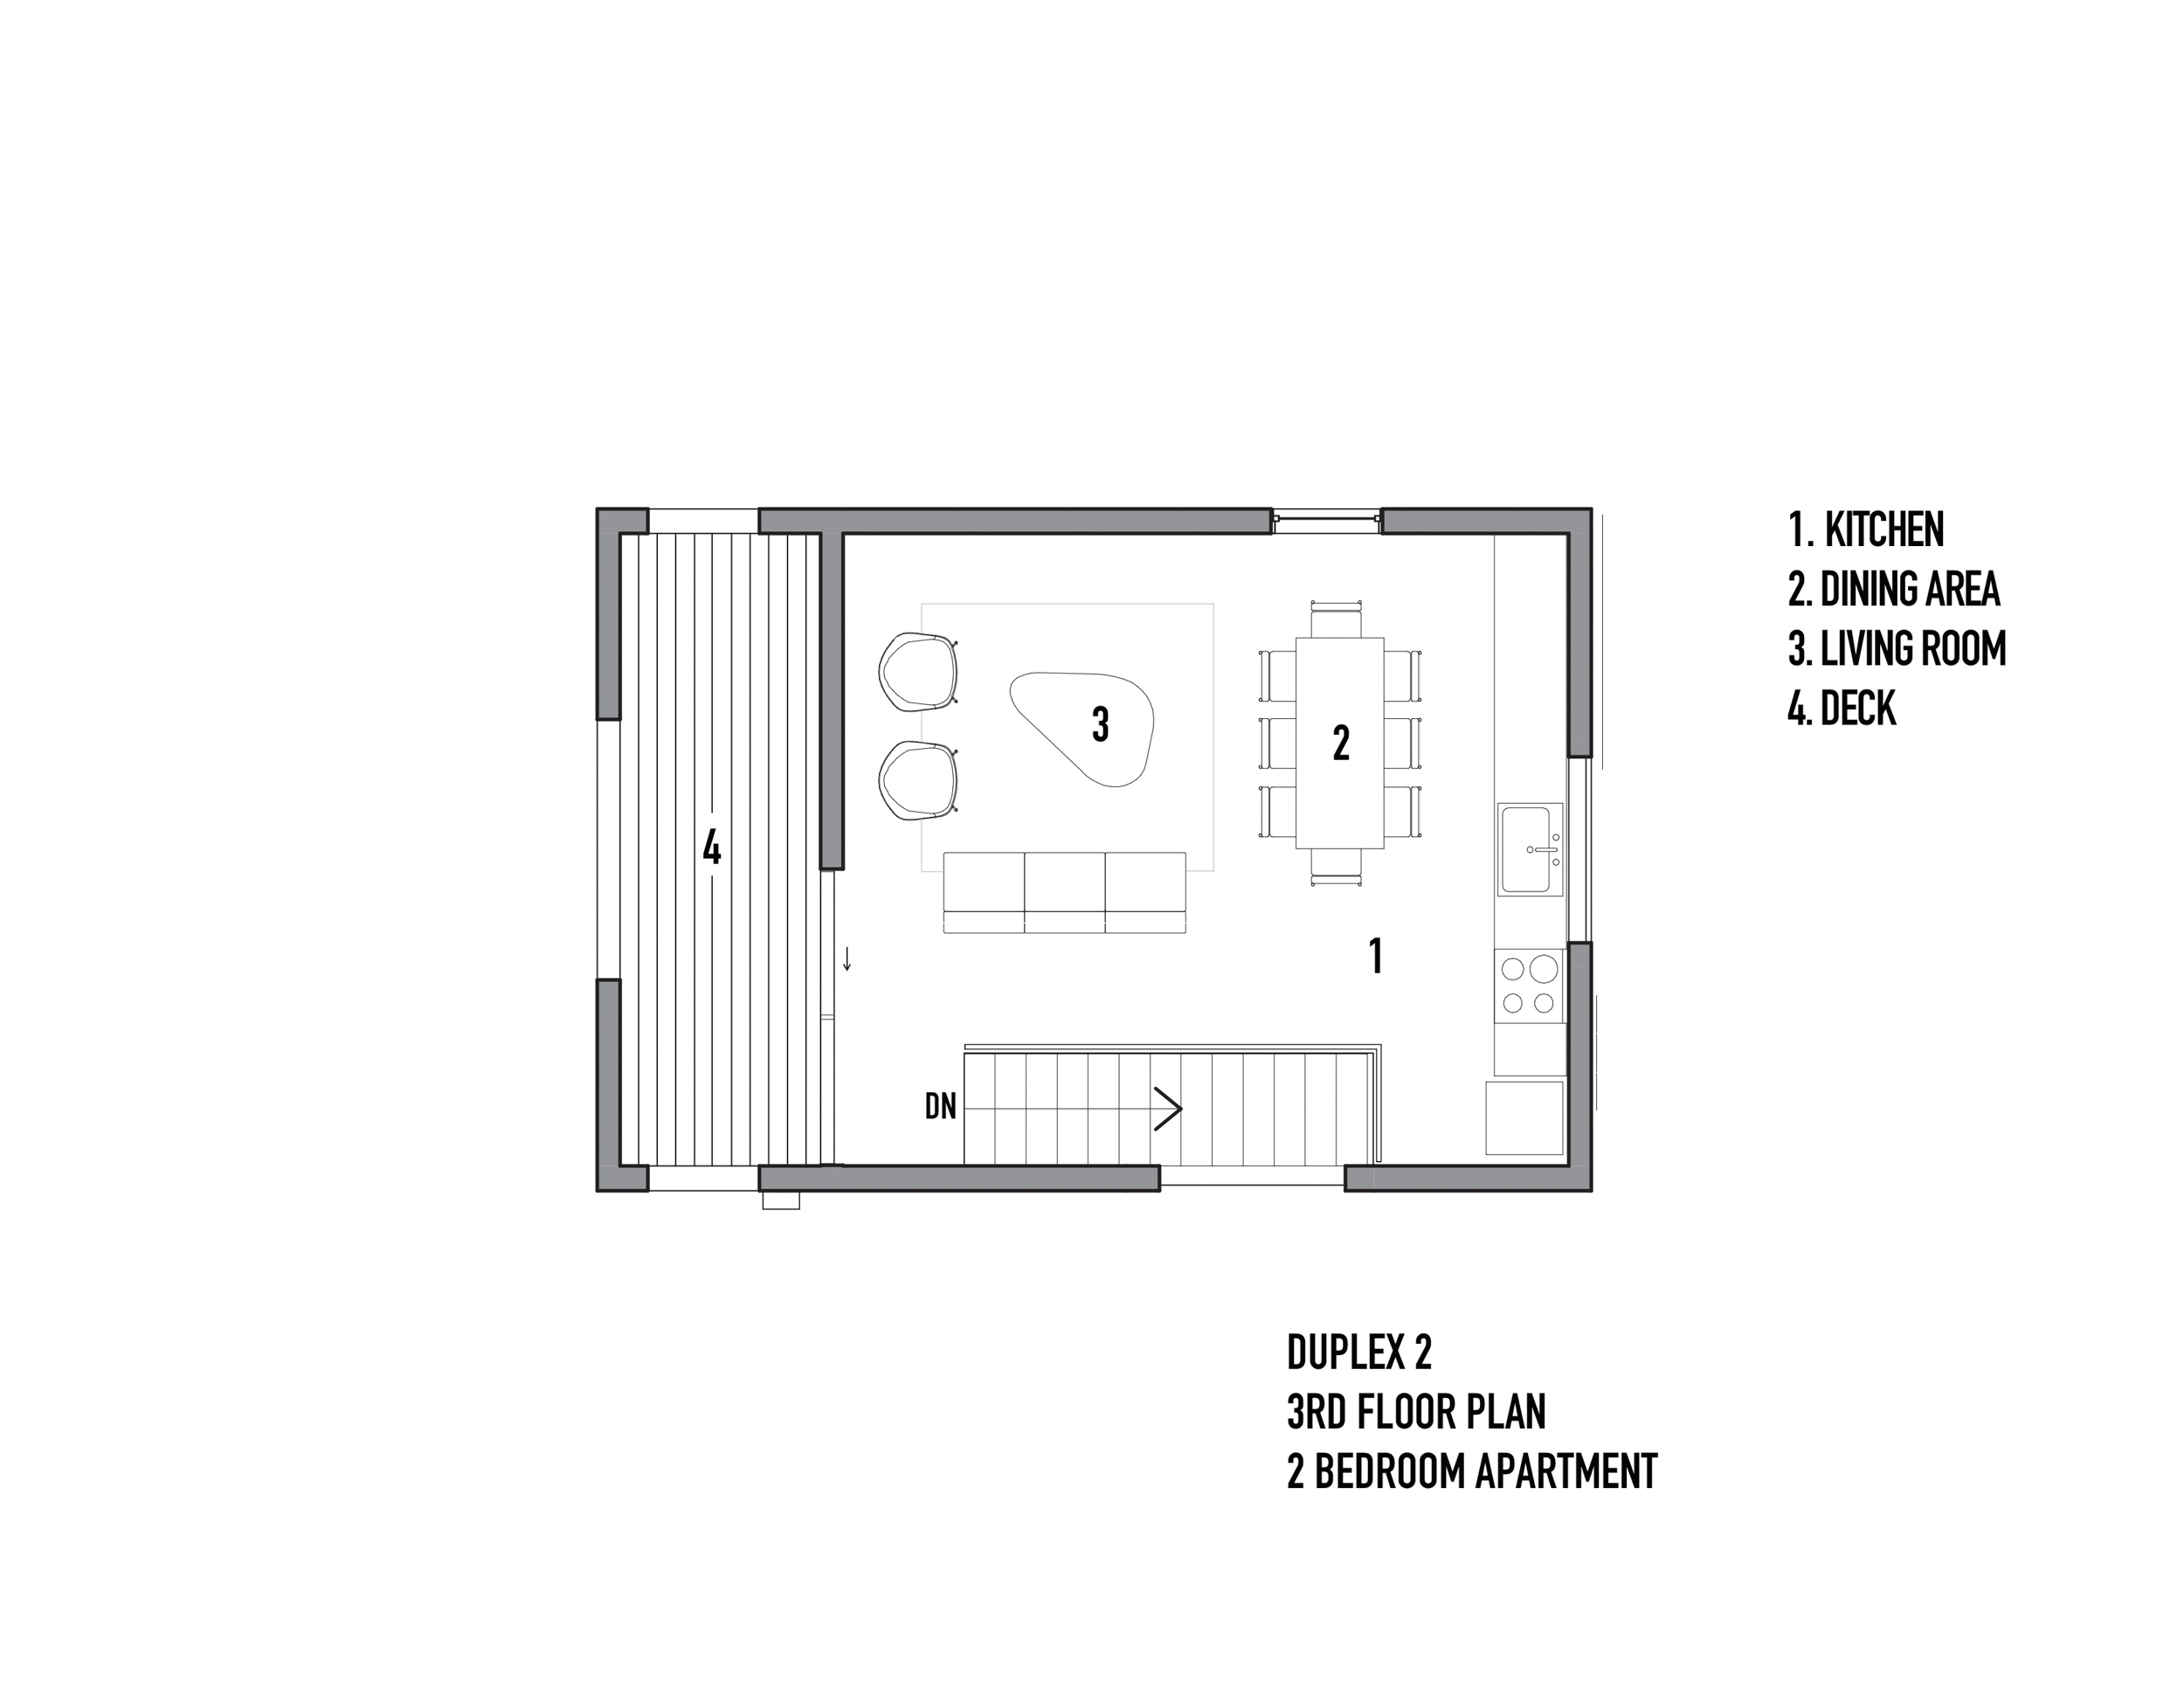 wc-studio-twin-peaks-tacoma-plan-duplex-living.jpg